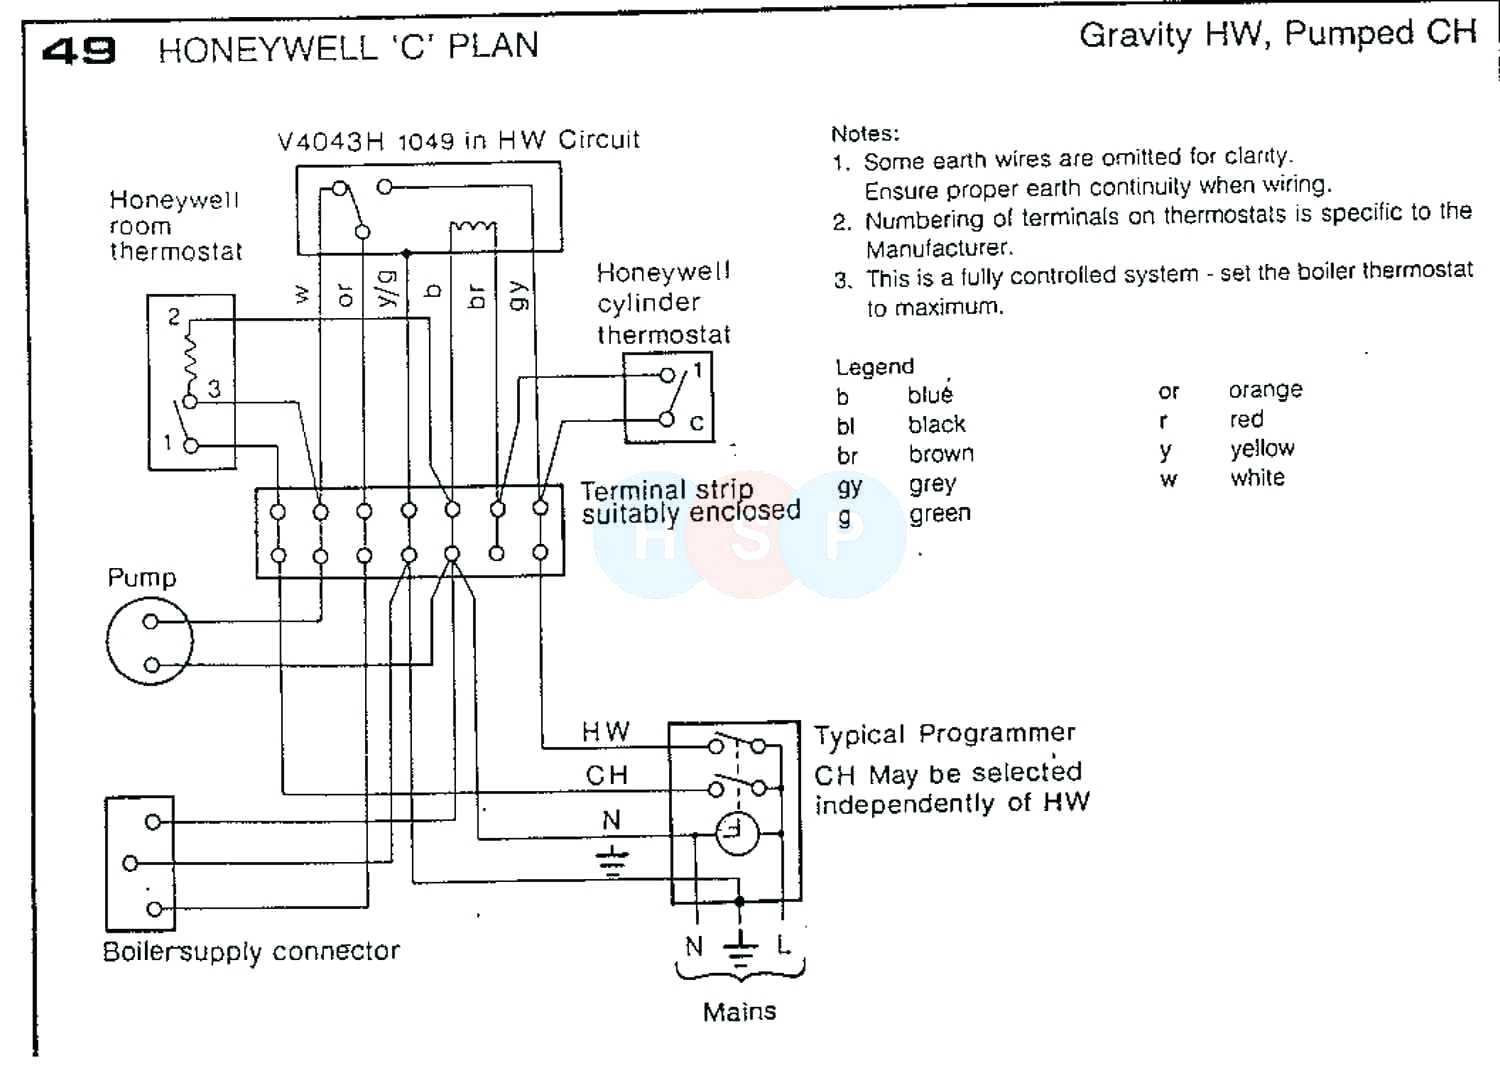 honeywell actuator wiring diagram Collection-Honeywell Actuator Wiring Diagram – Wire Diagram 8-a